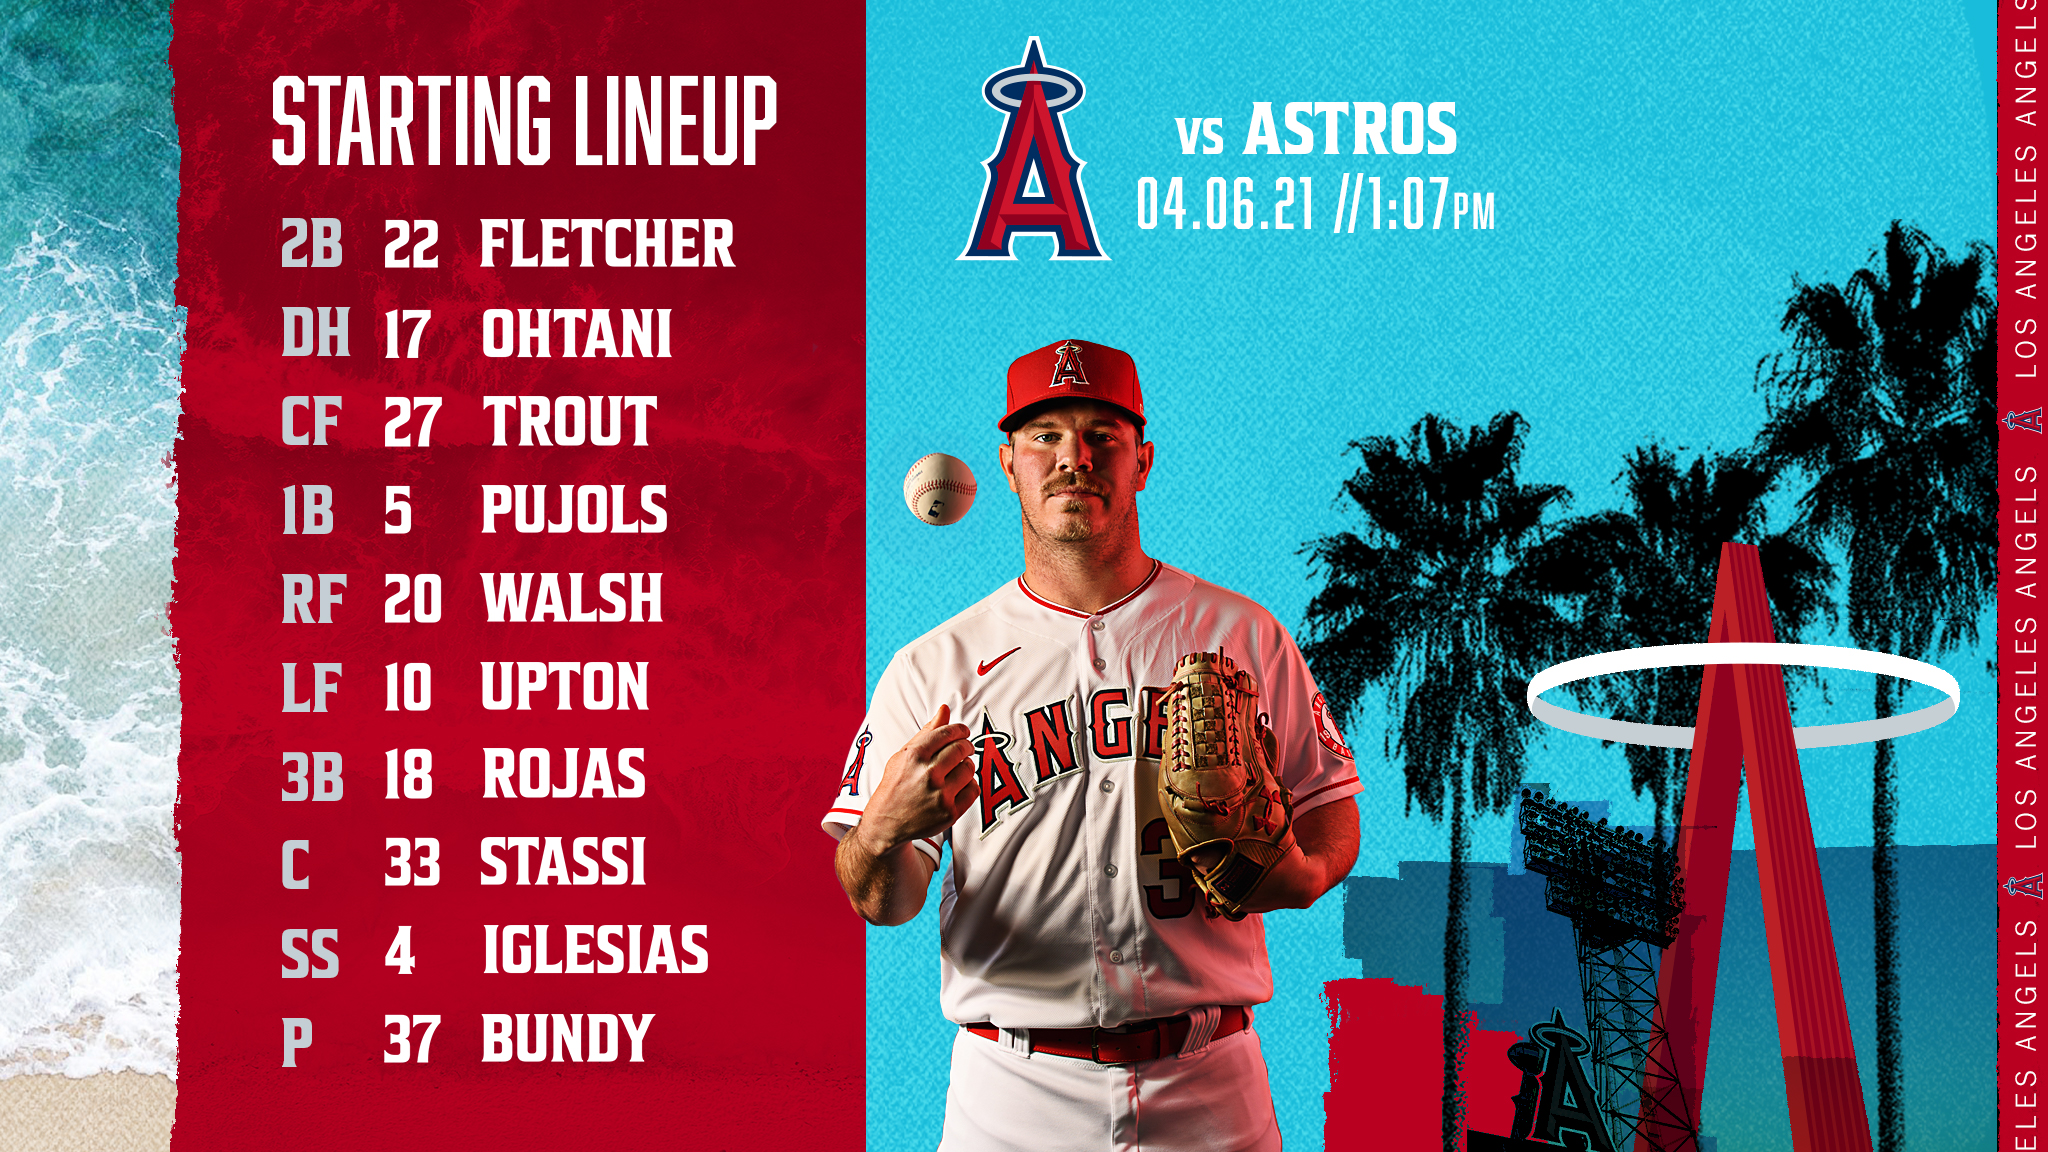 Gameday Thread: Angels vs. Astros (4-6-2021) Rojas starting at 3B - Walsh in RF